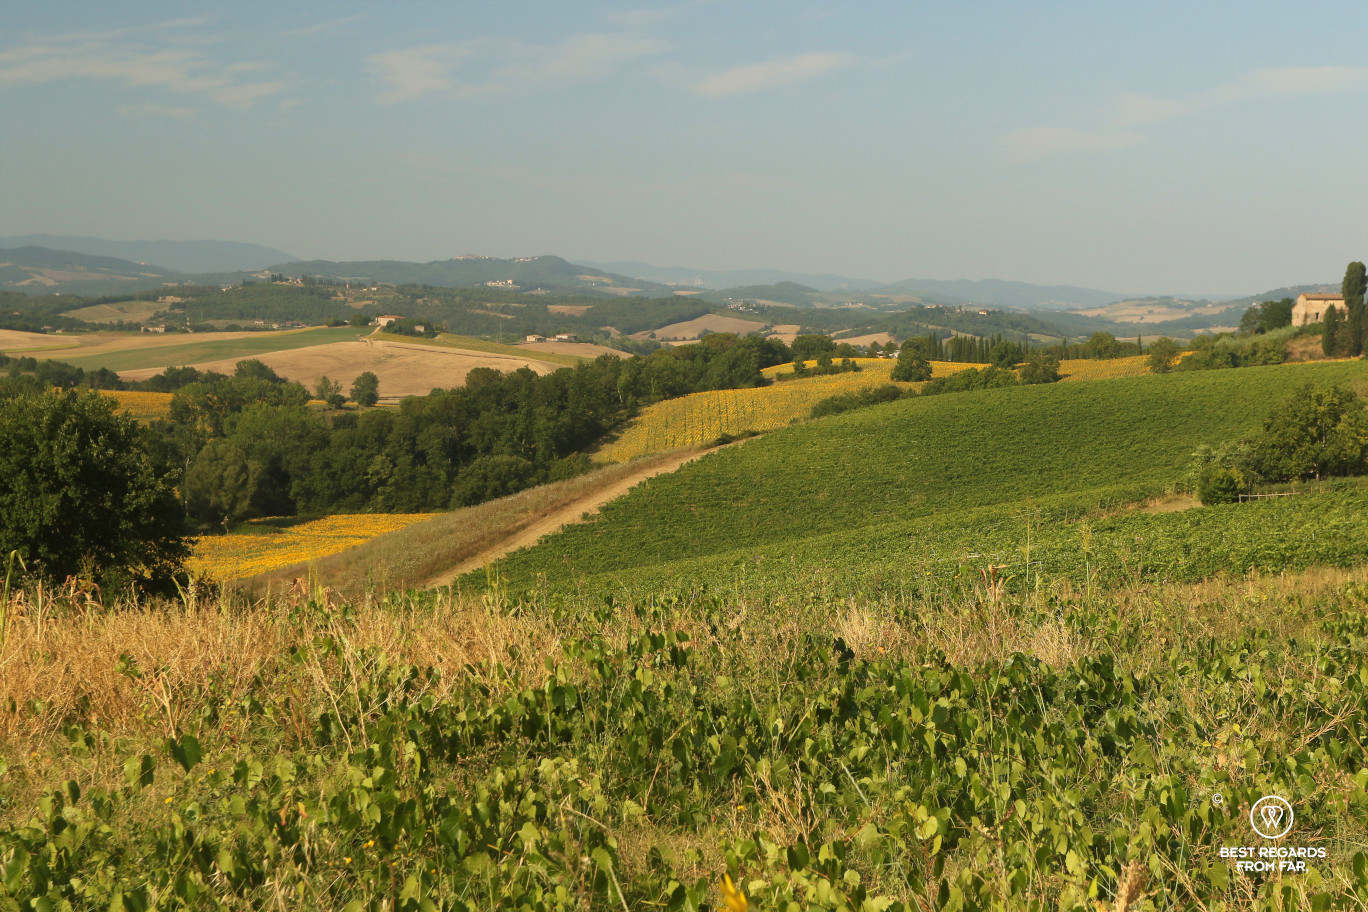 Tuscan landscape with sunflower fields on the hills, Italy